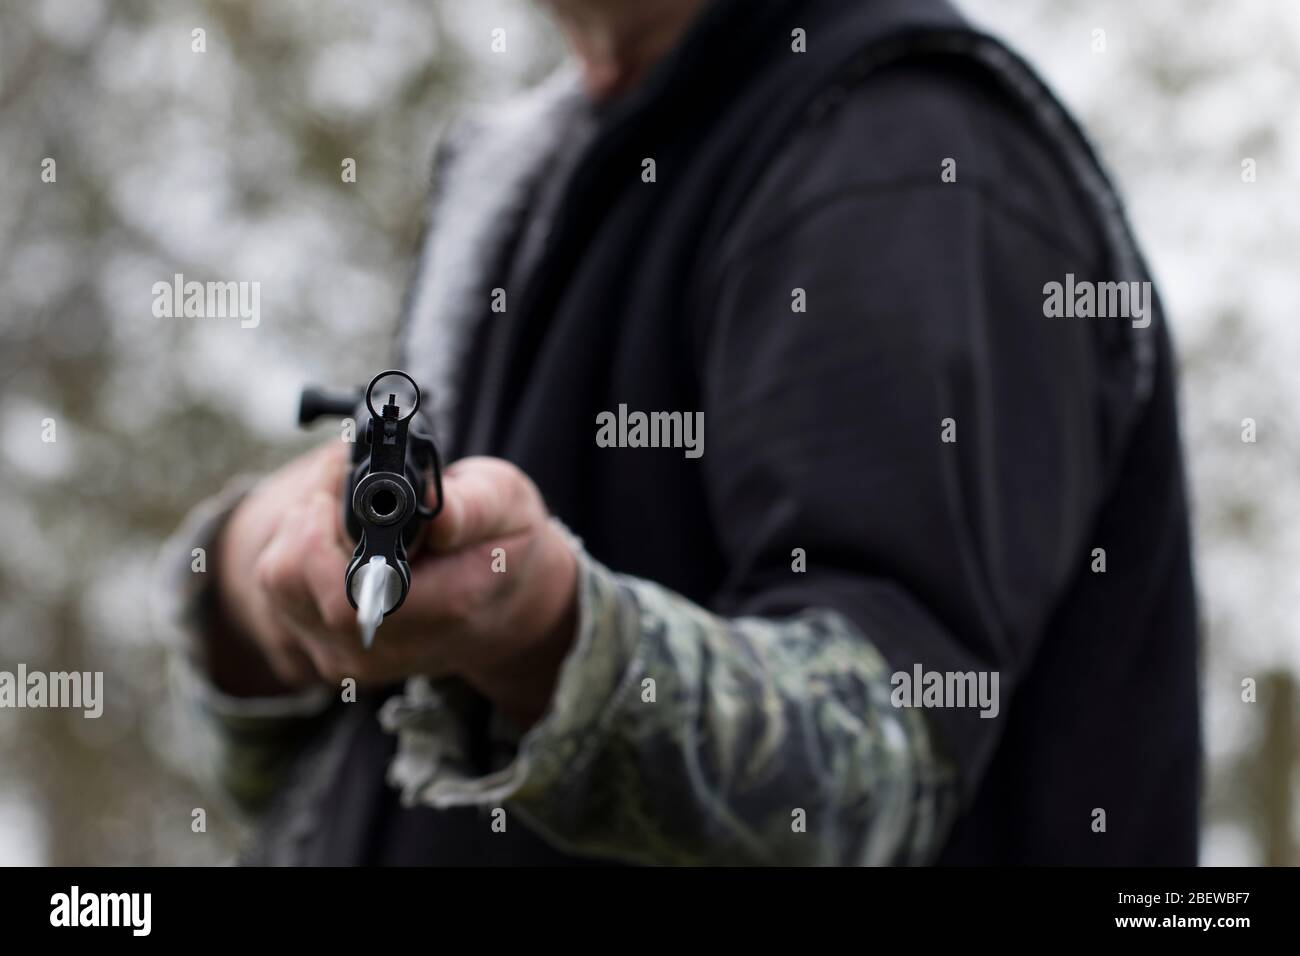 Down The Barrel Of A Gun High Resolution Stock Photography And Images Alamy